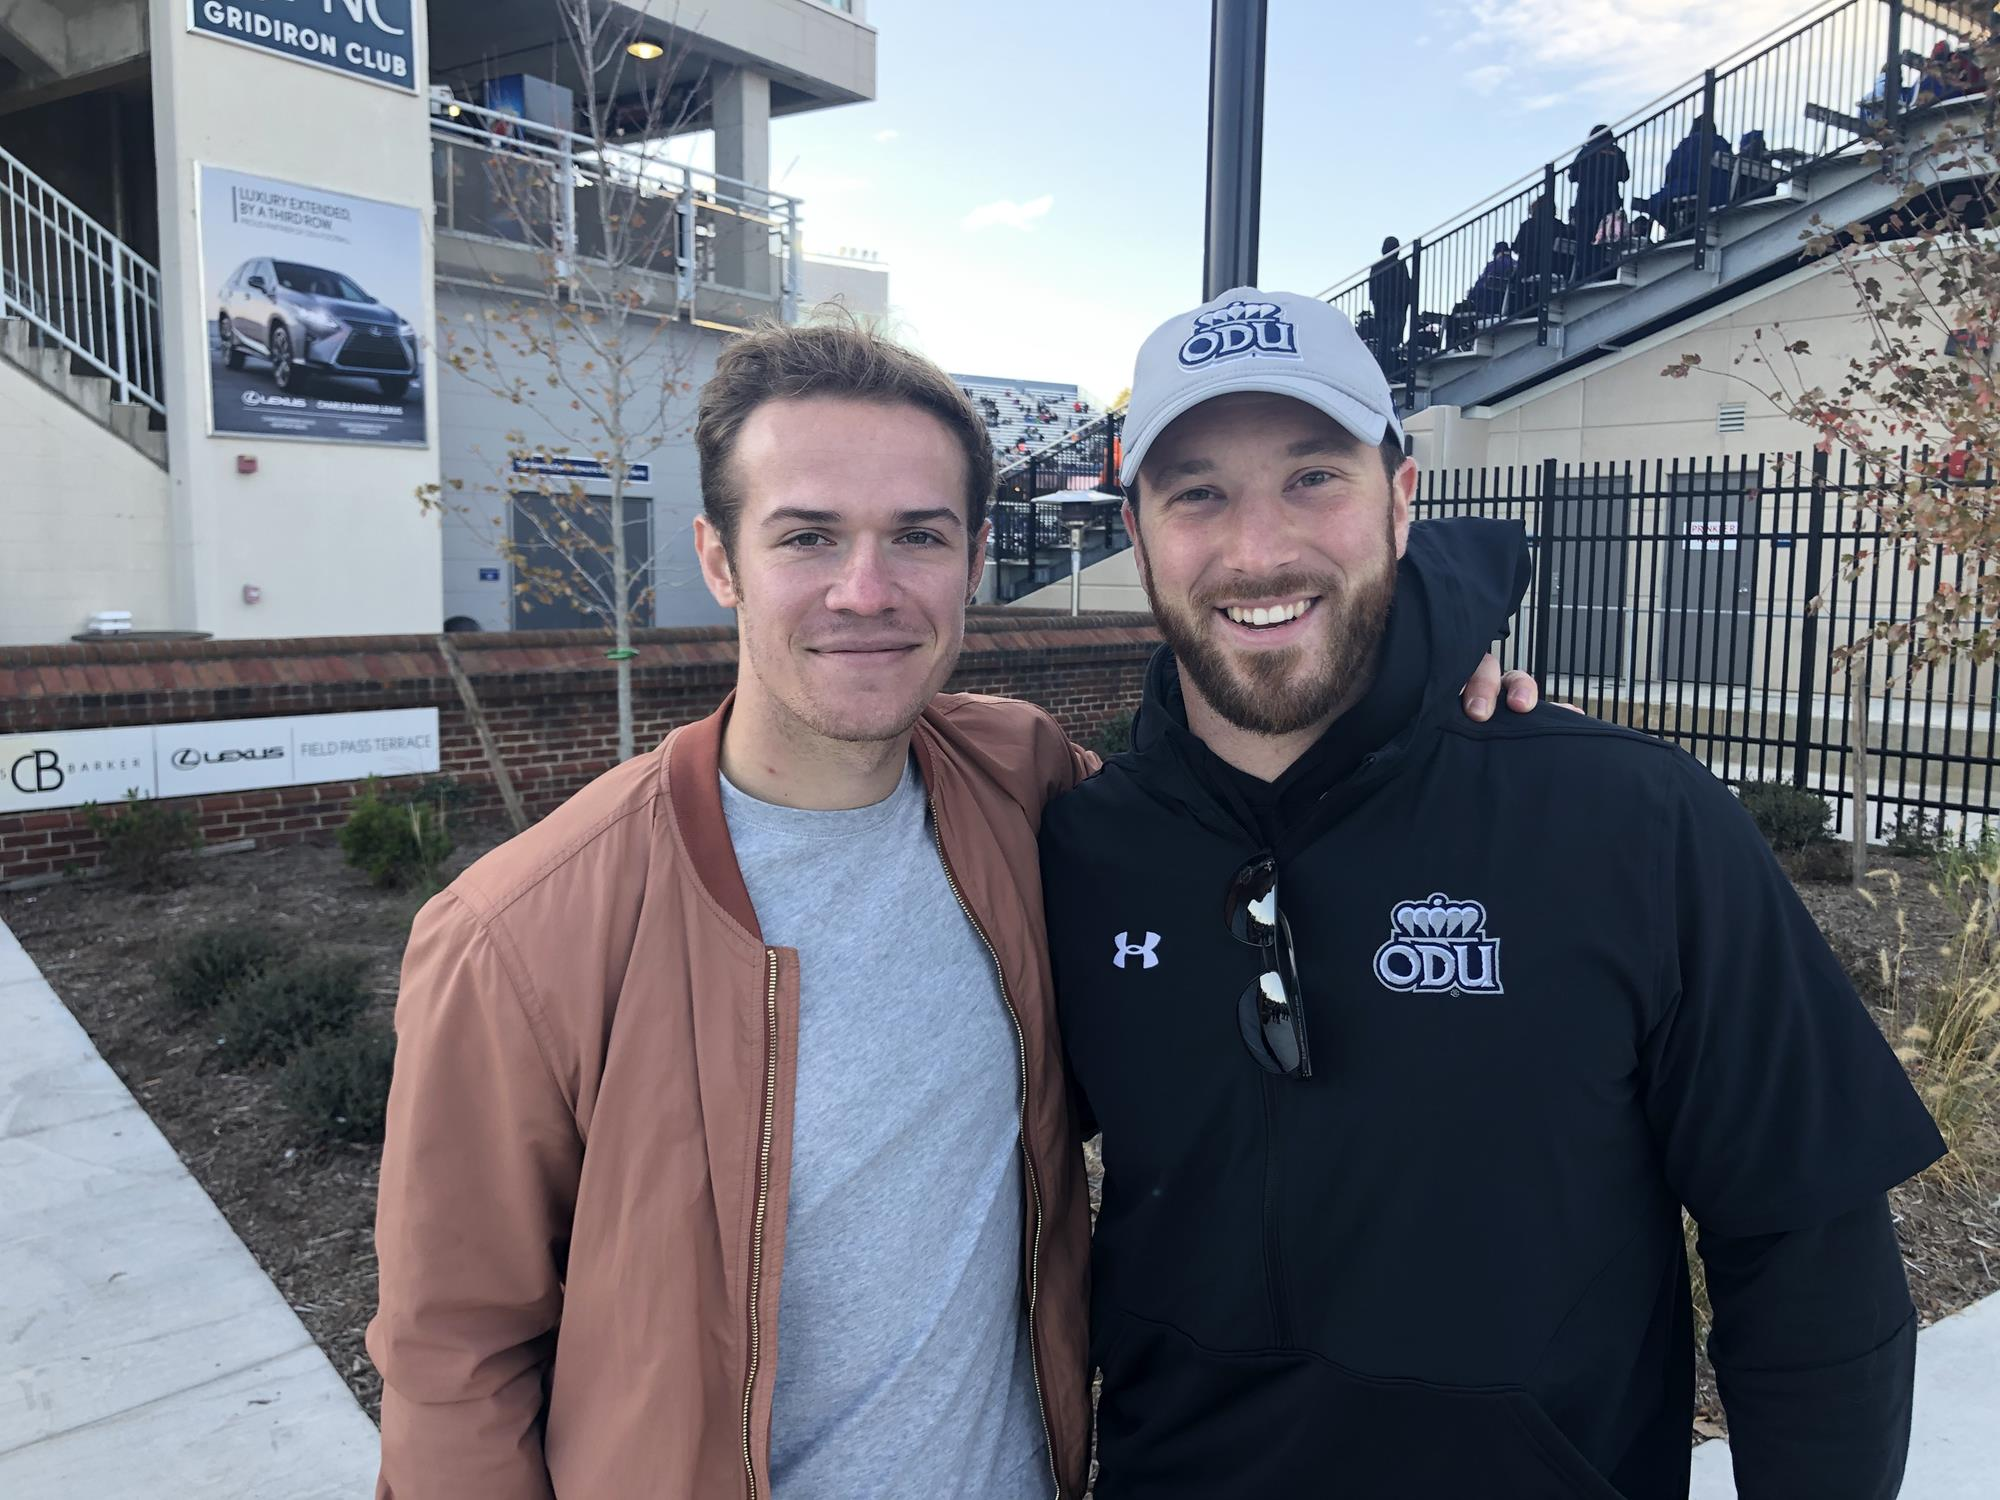 Minium Taylor Heinicke And Rick Lovato Both Approve Of New S B Ballard Stadium And Freshman Quarterback Hayden Wolff Old Dominion University